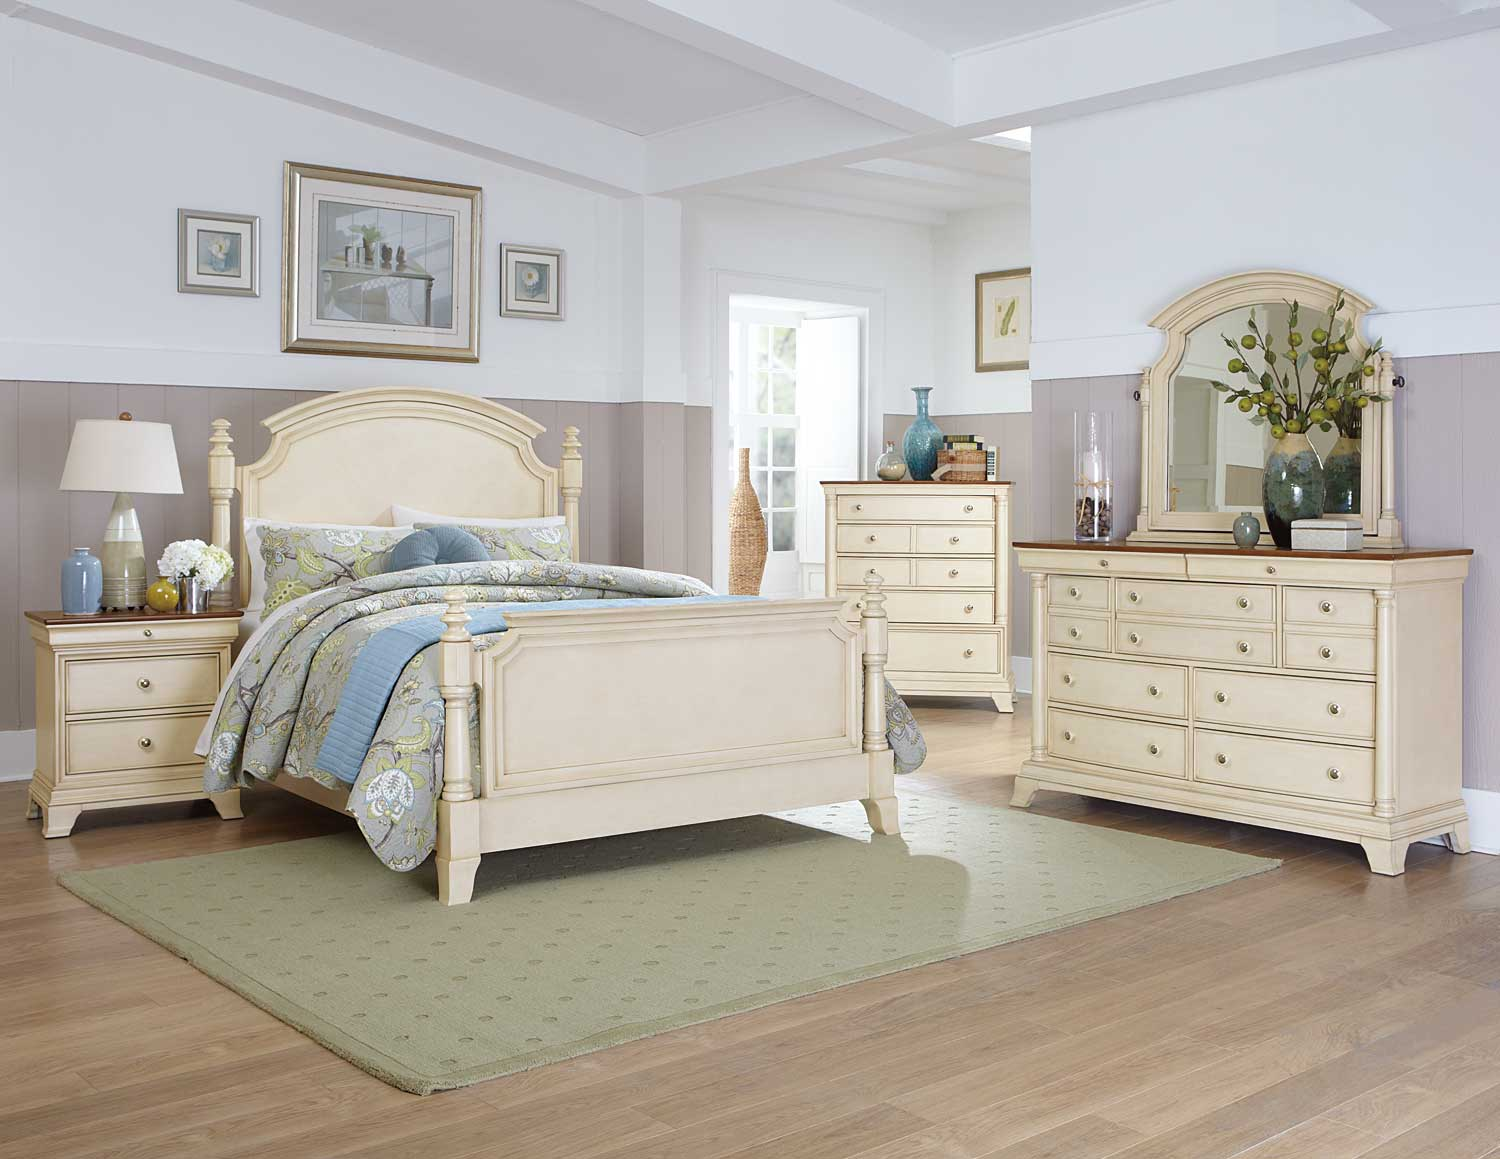 Homelegance Inglewood II Bedroom Set - White B1402W-BED-SET ...